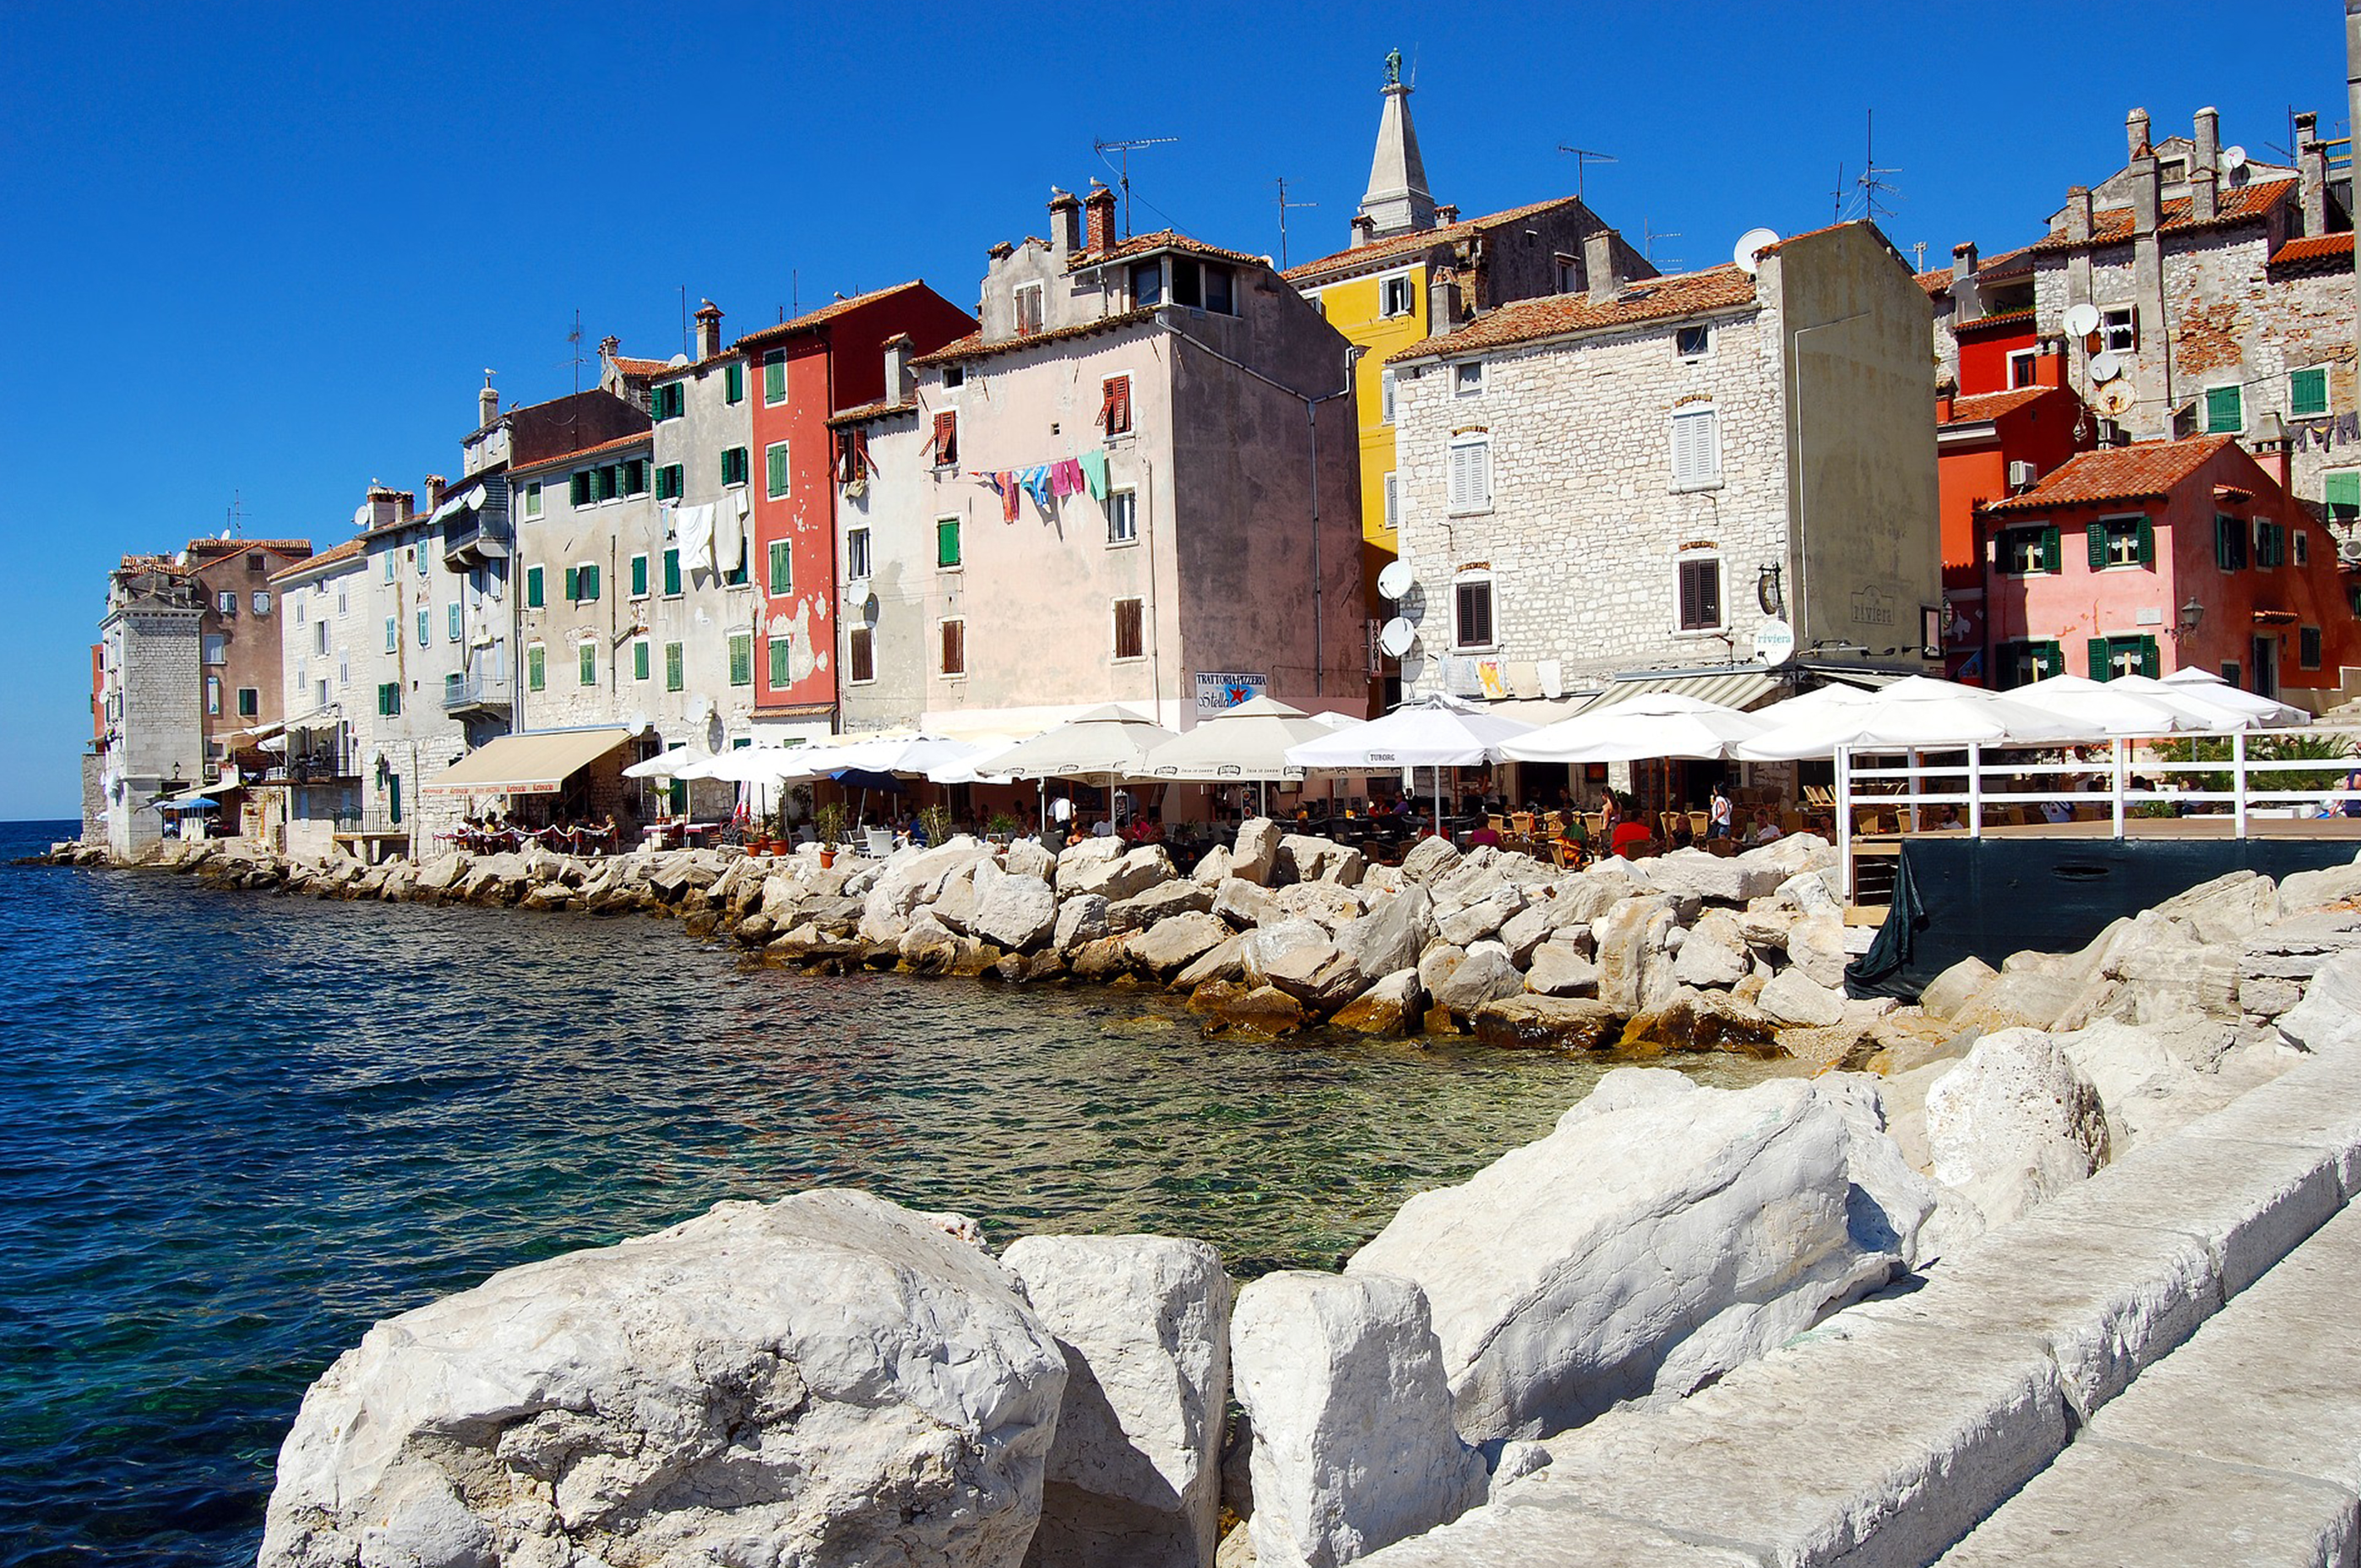 Don t travel read only one page st augustine rovinj croatia - Send Request